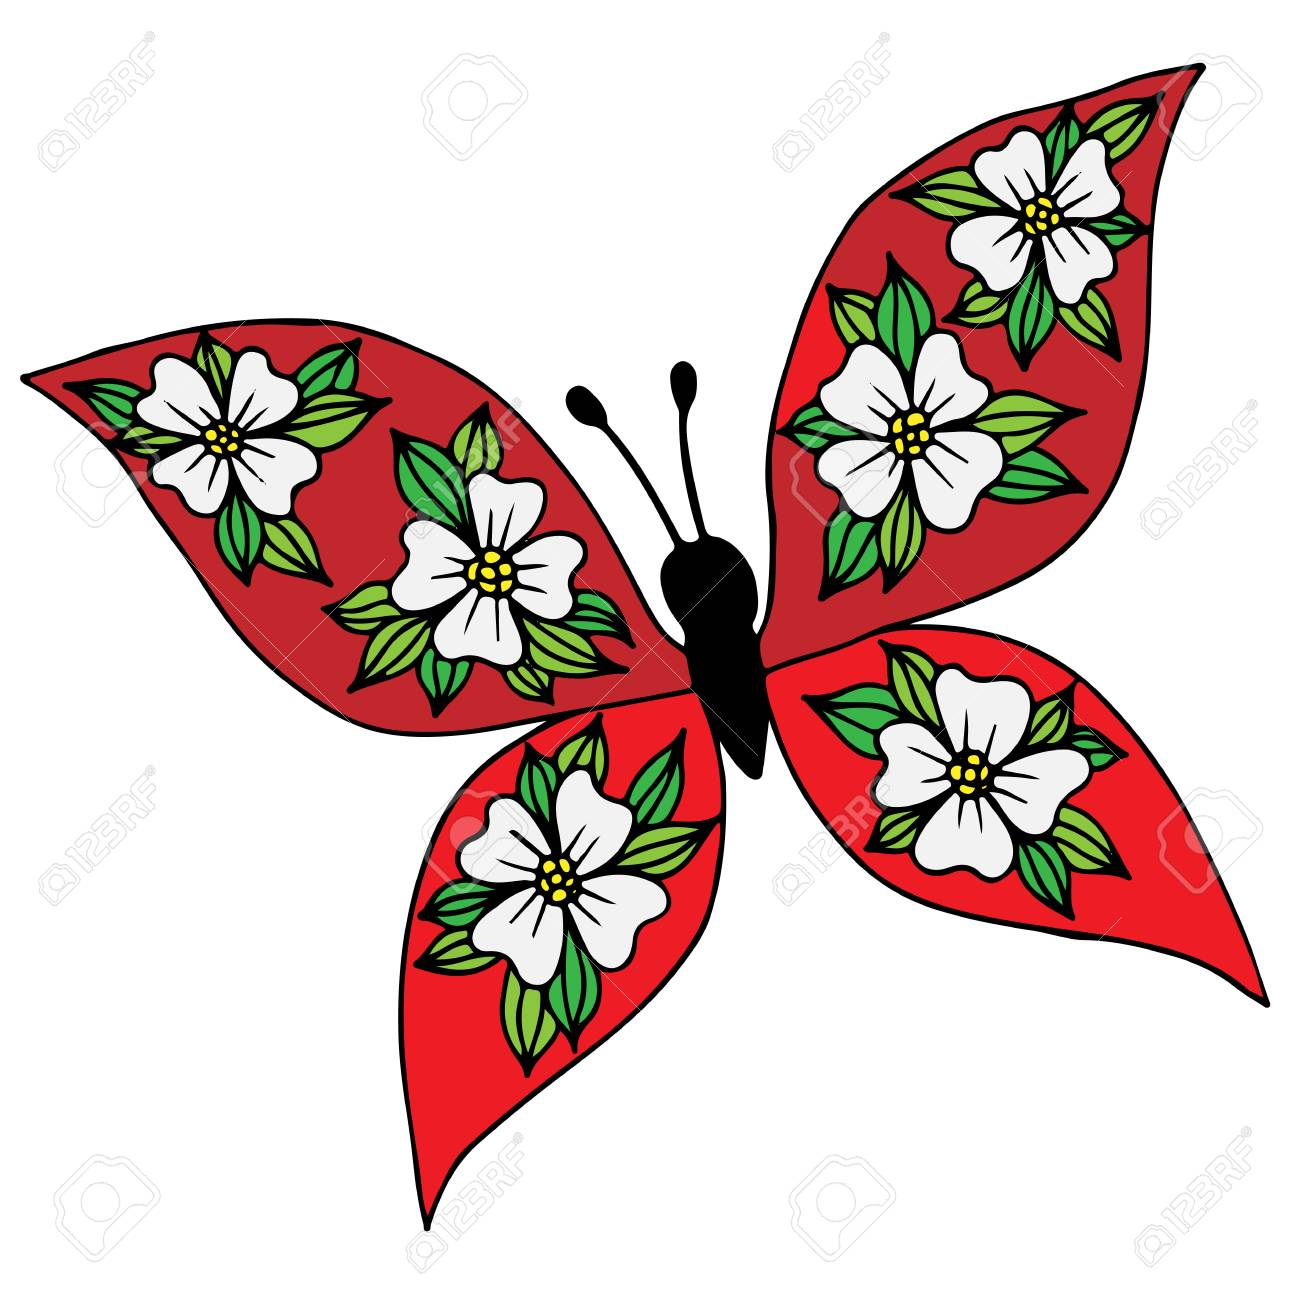 Colorful Isolated Butterfly With Flower On The Wing For Tattoo ...